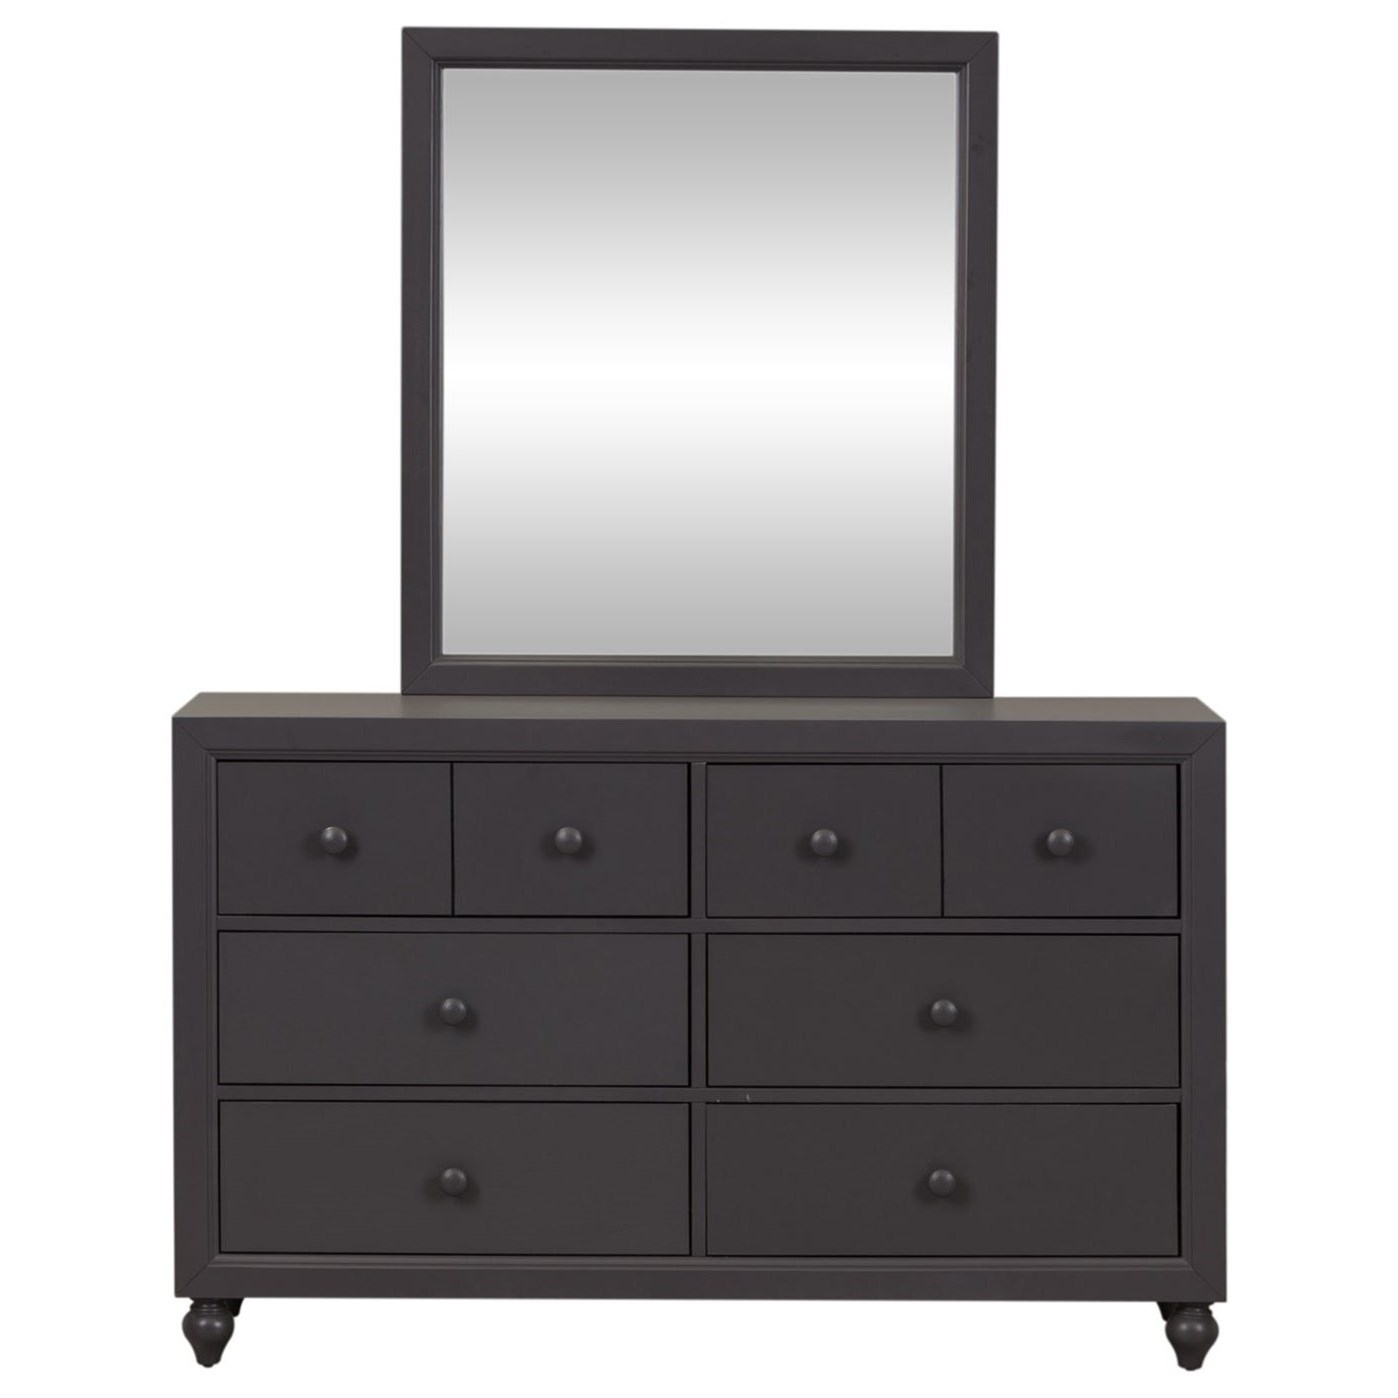 Cottage View Dresser and Mirror by Liberty Furniture at Darvin Furniture